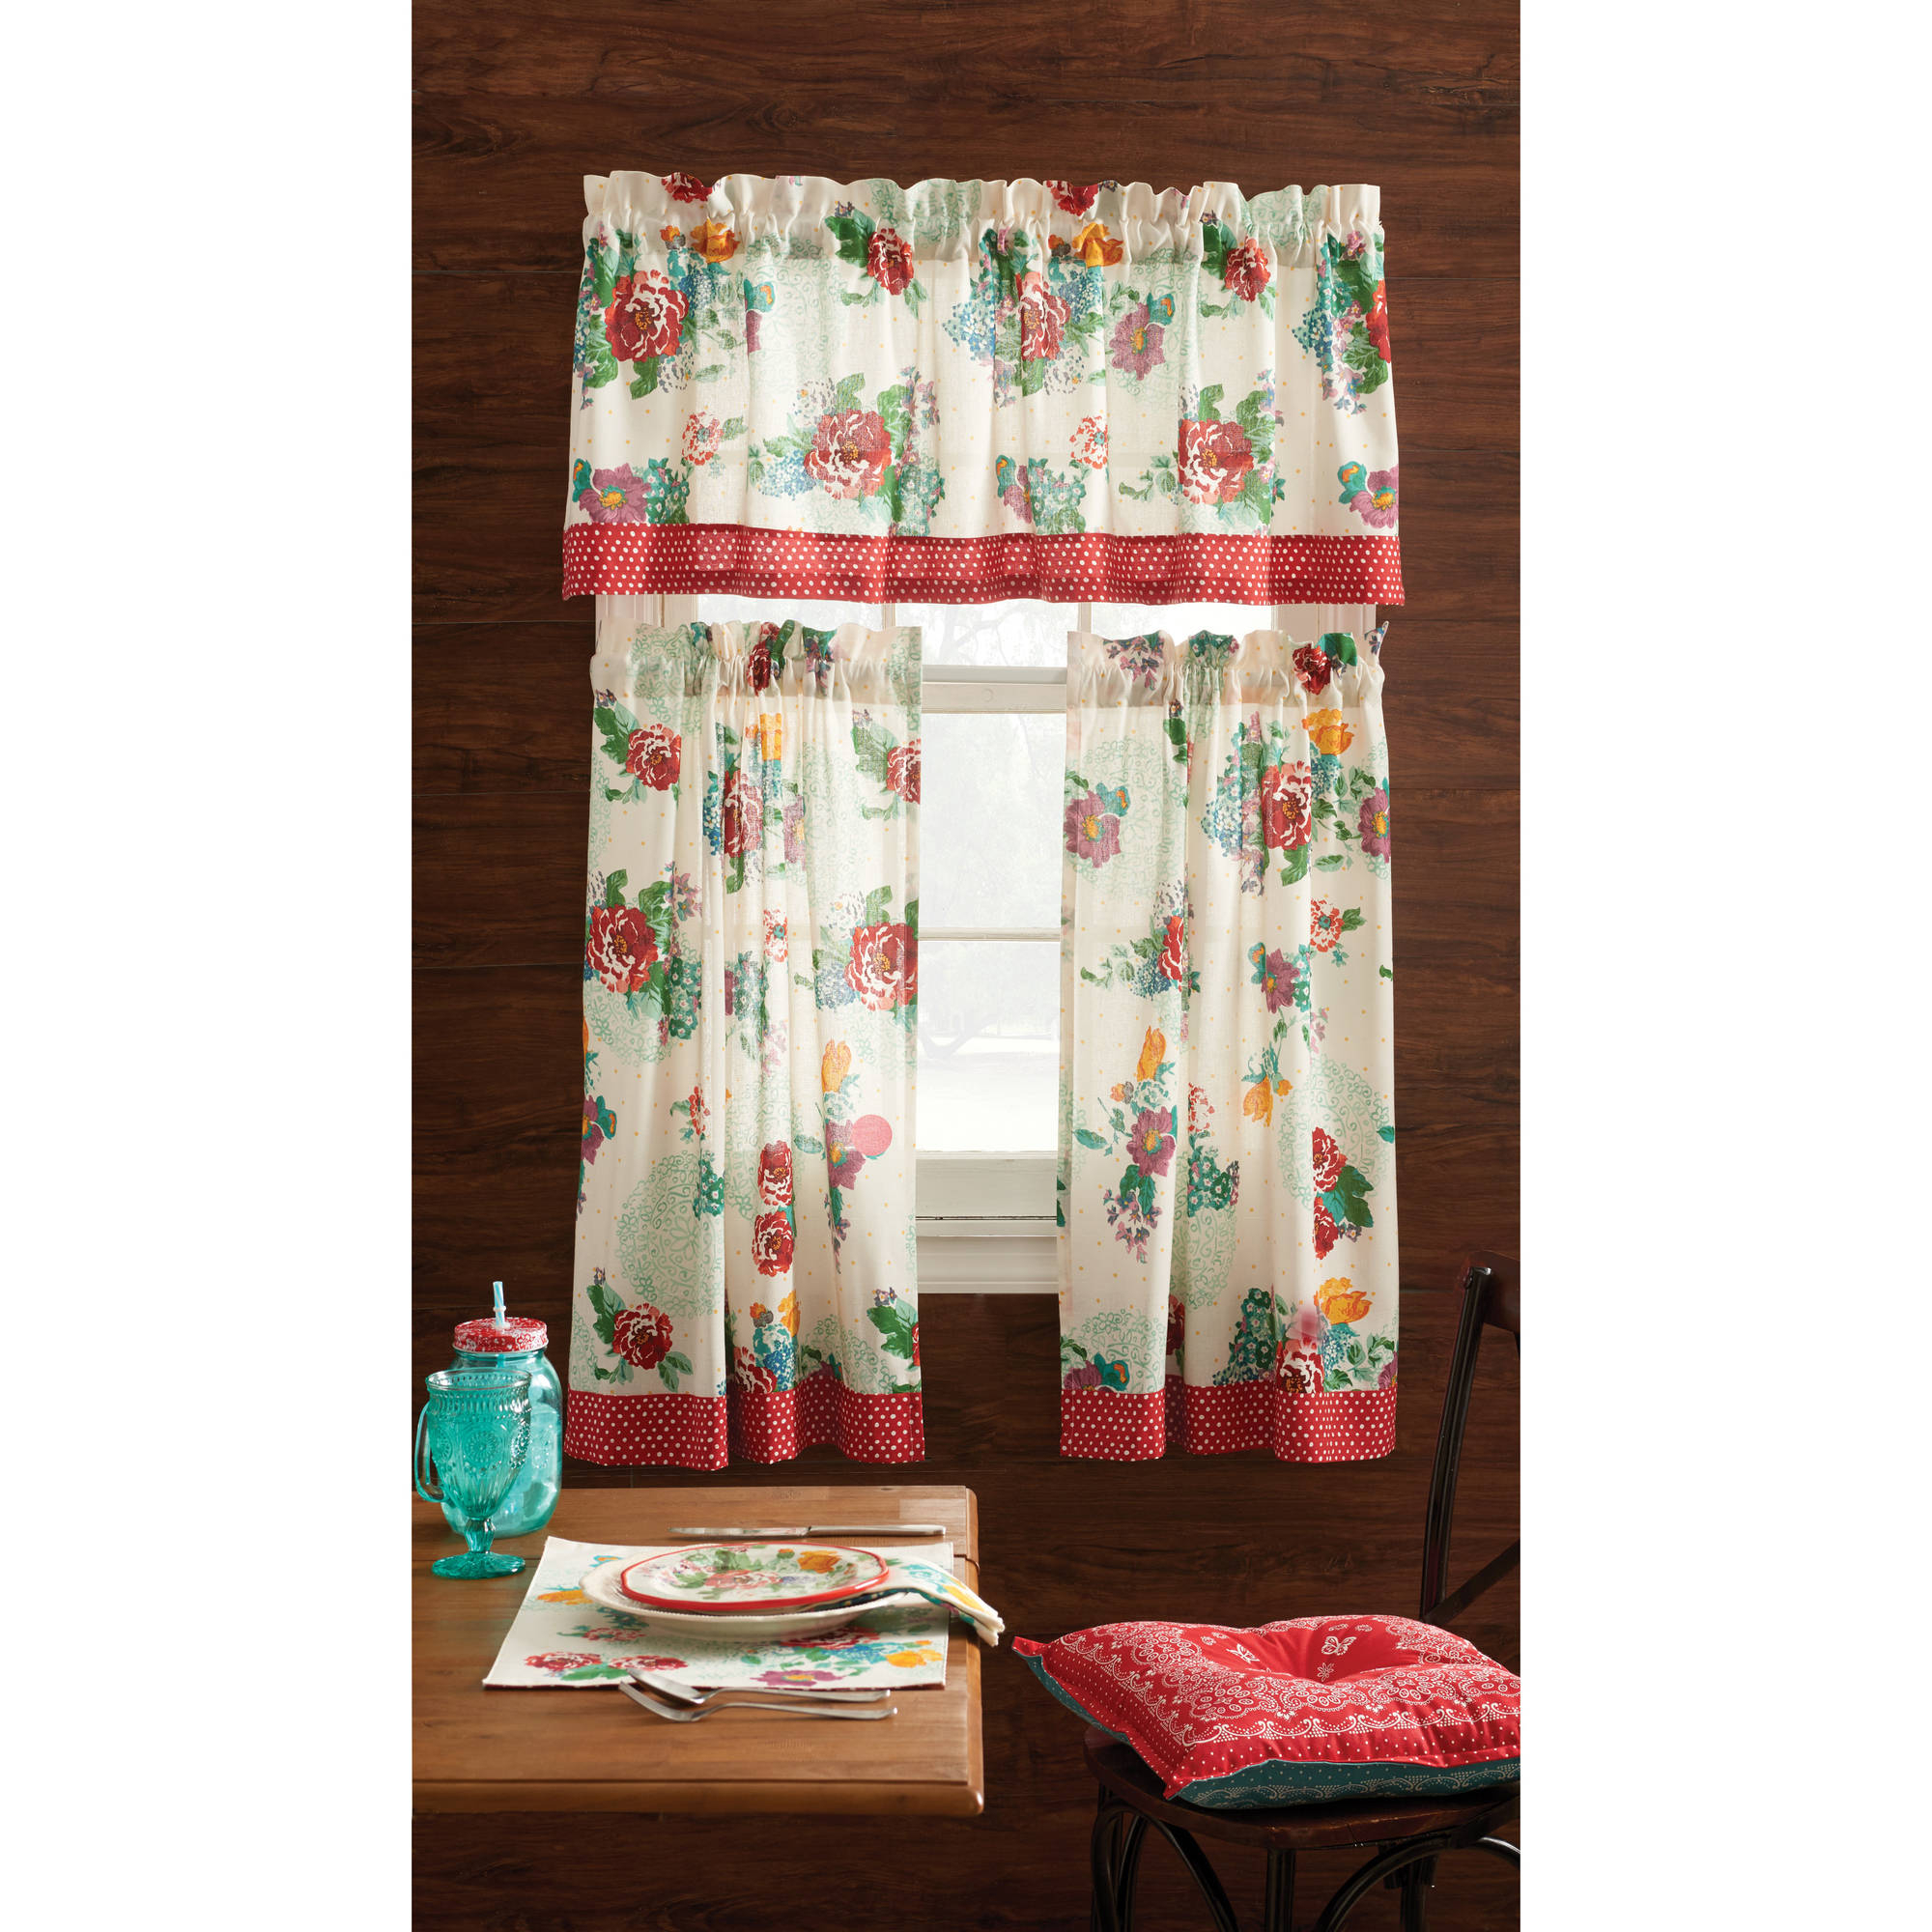 Surprising Basement Window Curtains Target Valances Within Classic Kitchen Curtain Sets (View 20 of 20)